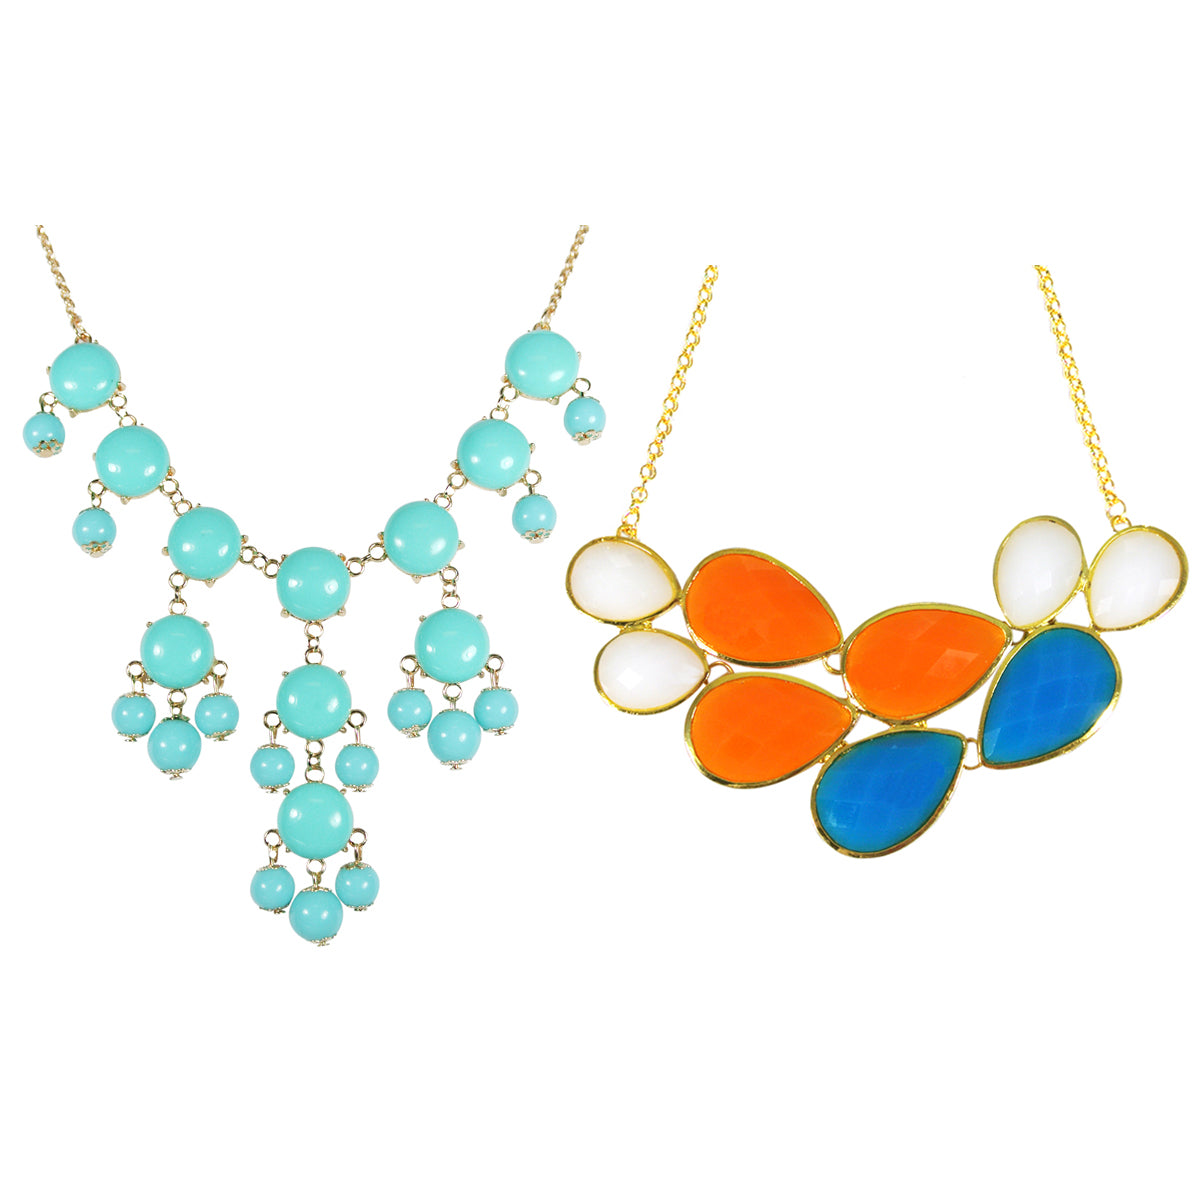 Multi Color Drop Shape Bubble Statement Necklaces + Sky Blue Mini Bubble Bib Statement Necklace (A64616) [A64287, A64441]